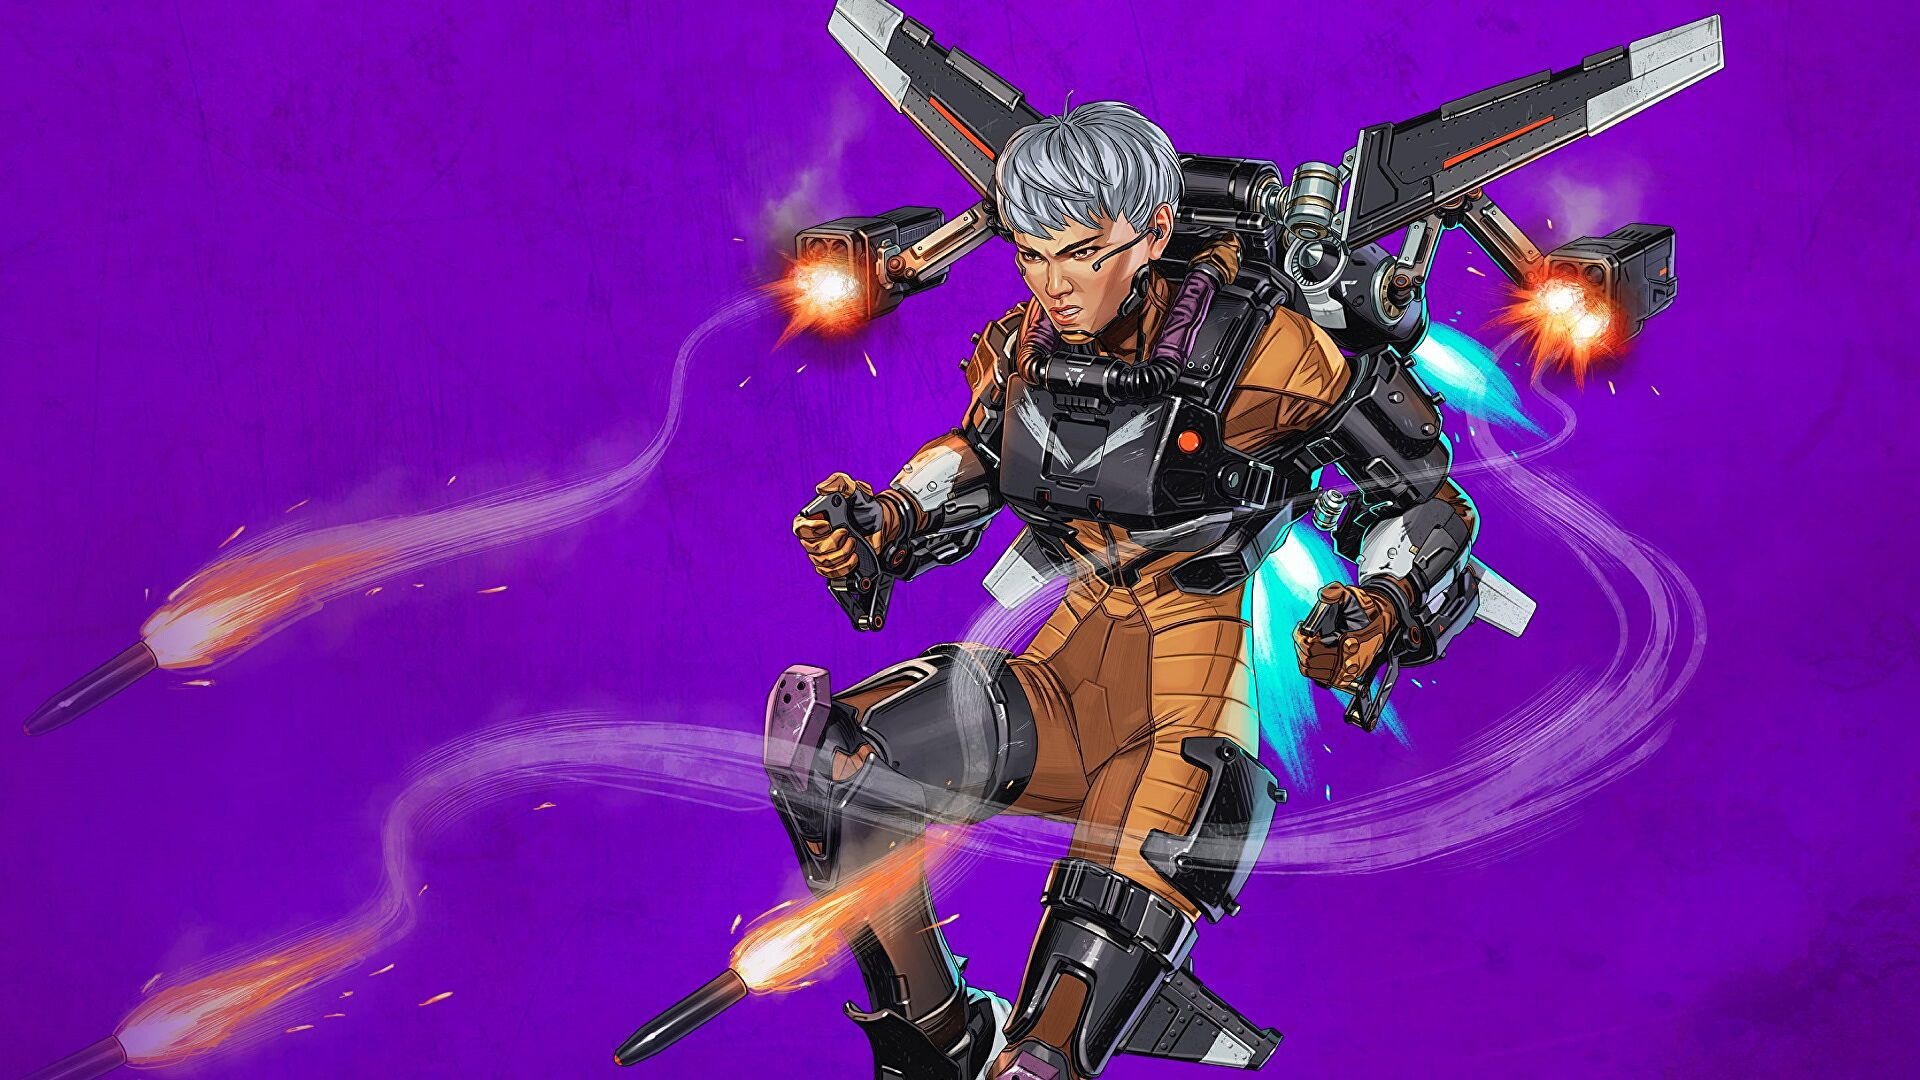 Apex Legends new character is the daughter of a Titanfall 2 boss